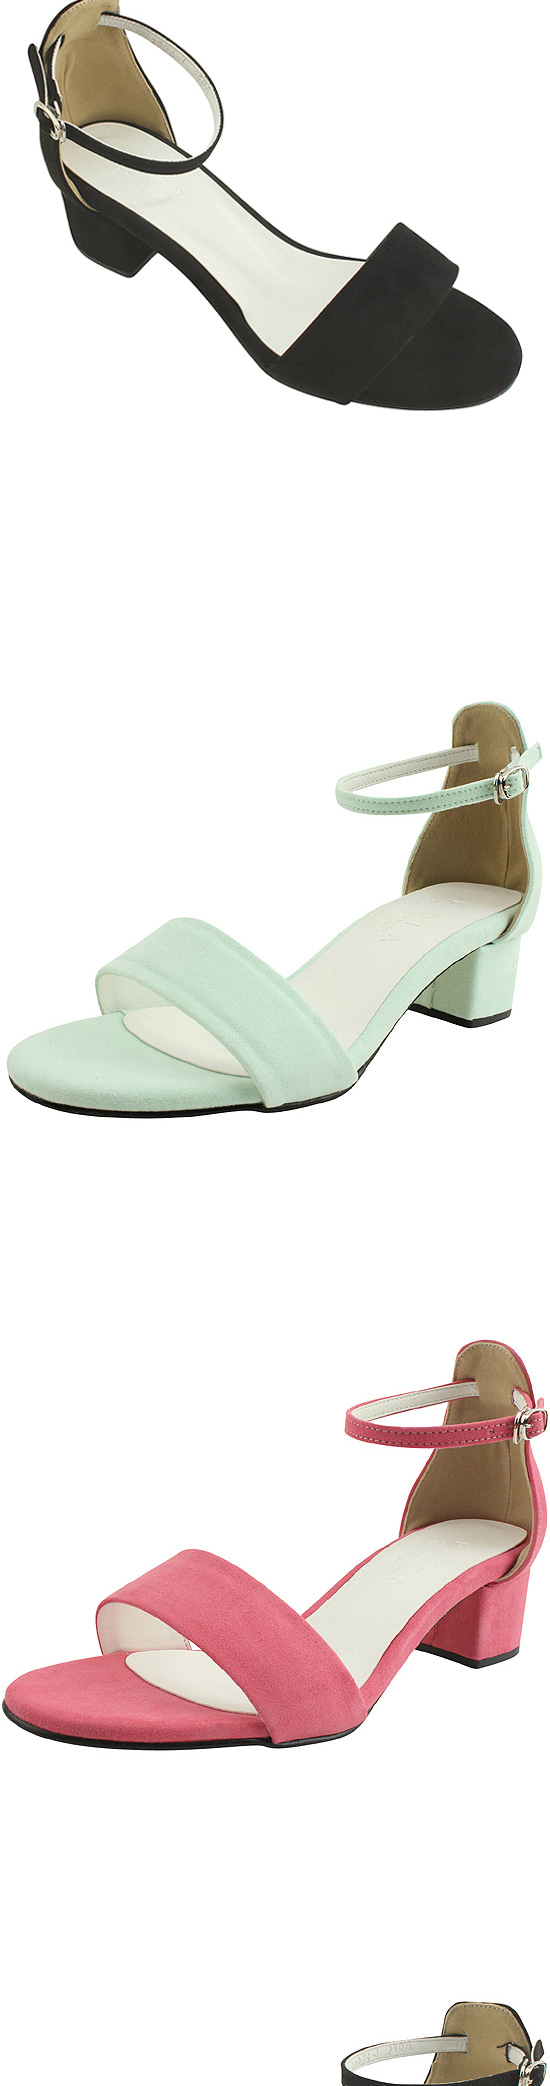 5cm mint suede strap sandals